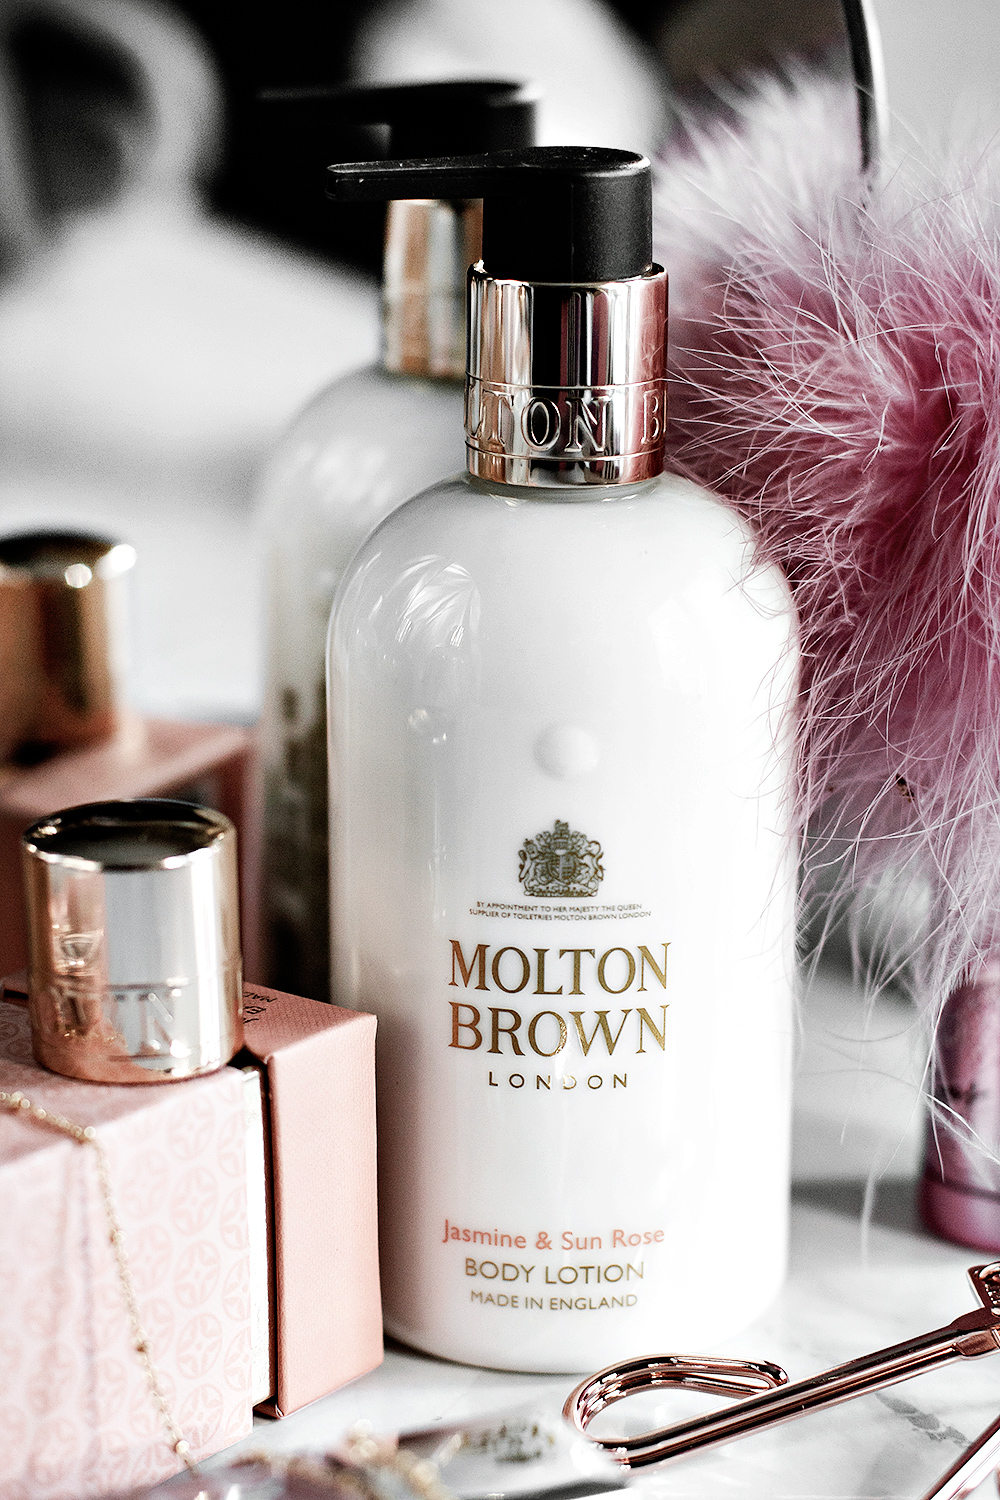 Molton Brown Jasmine & Sun Rose